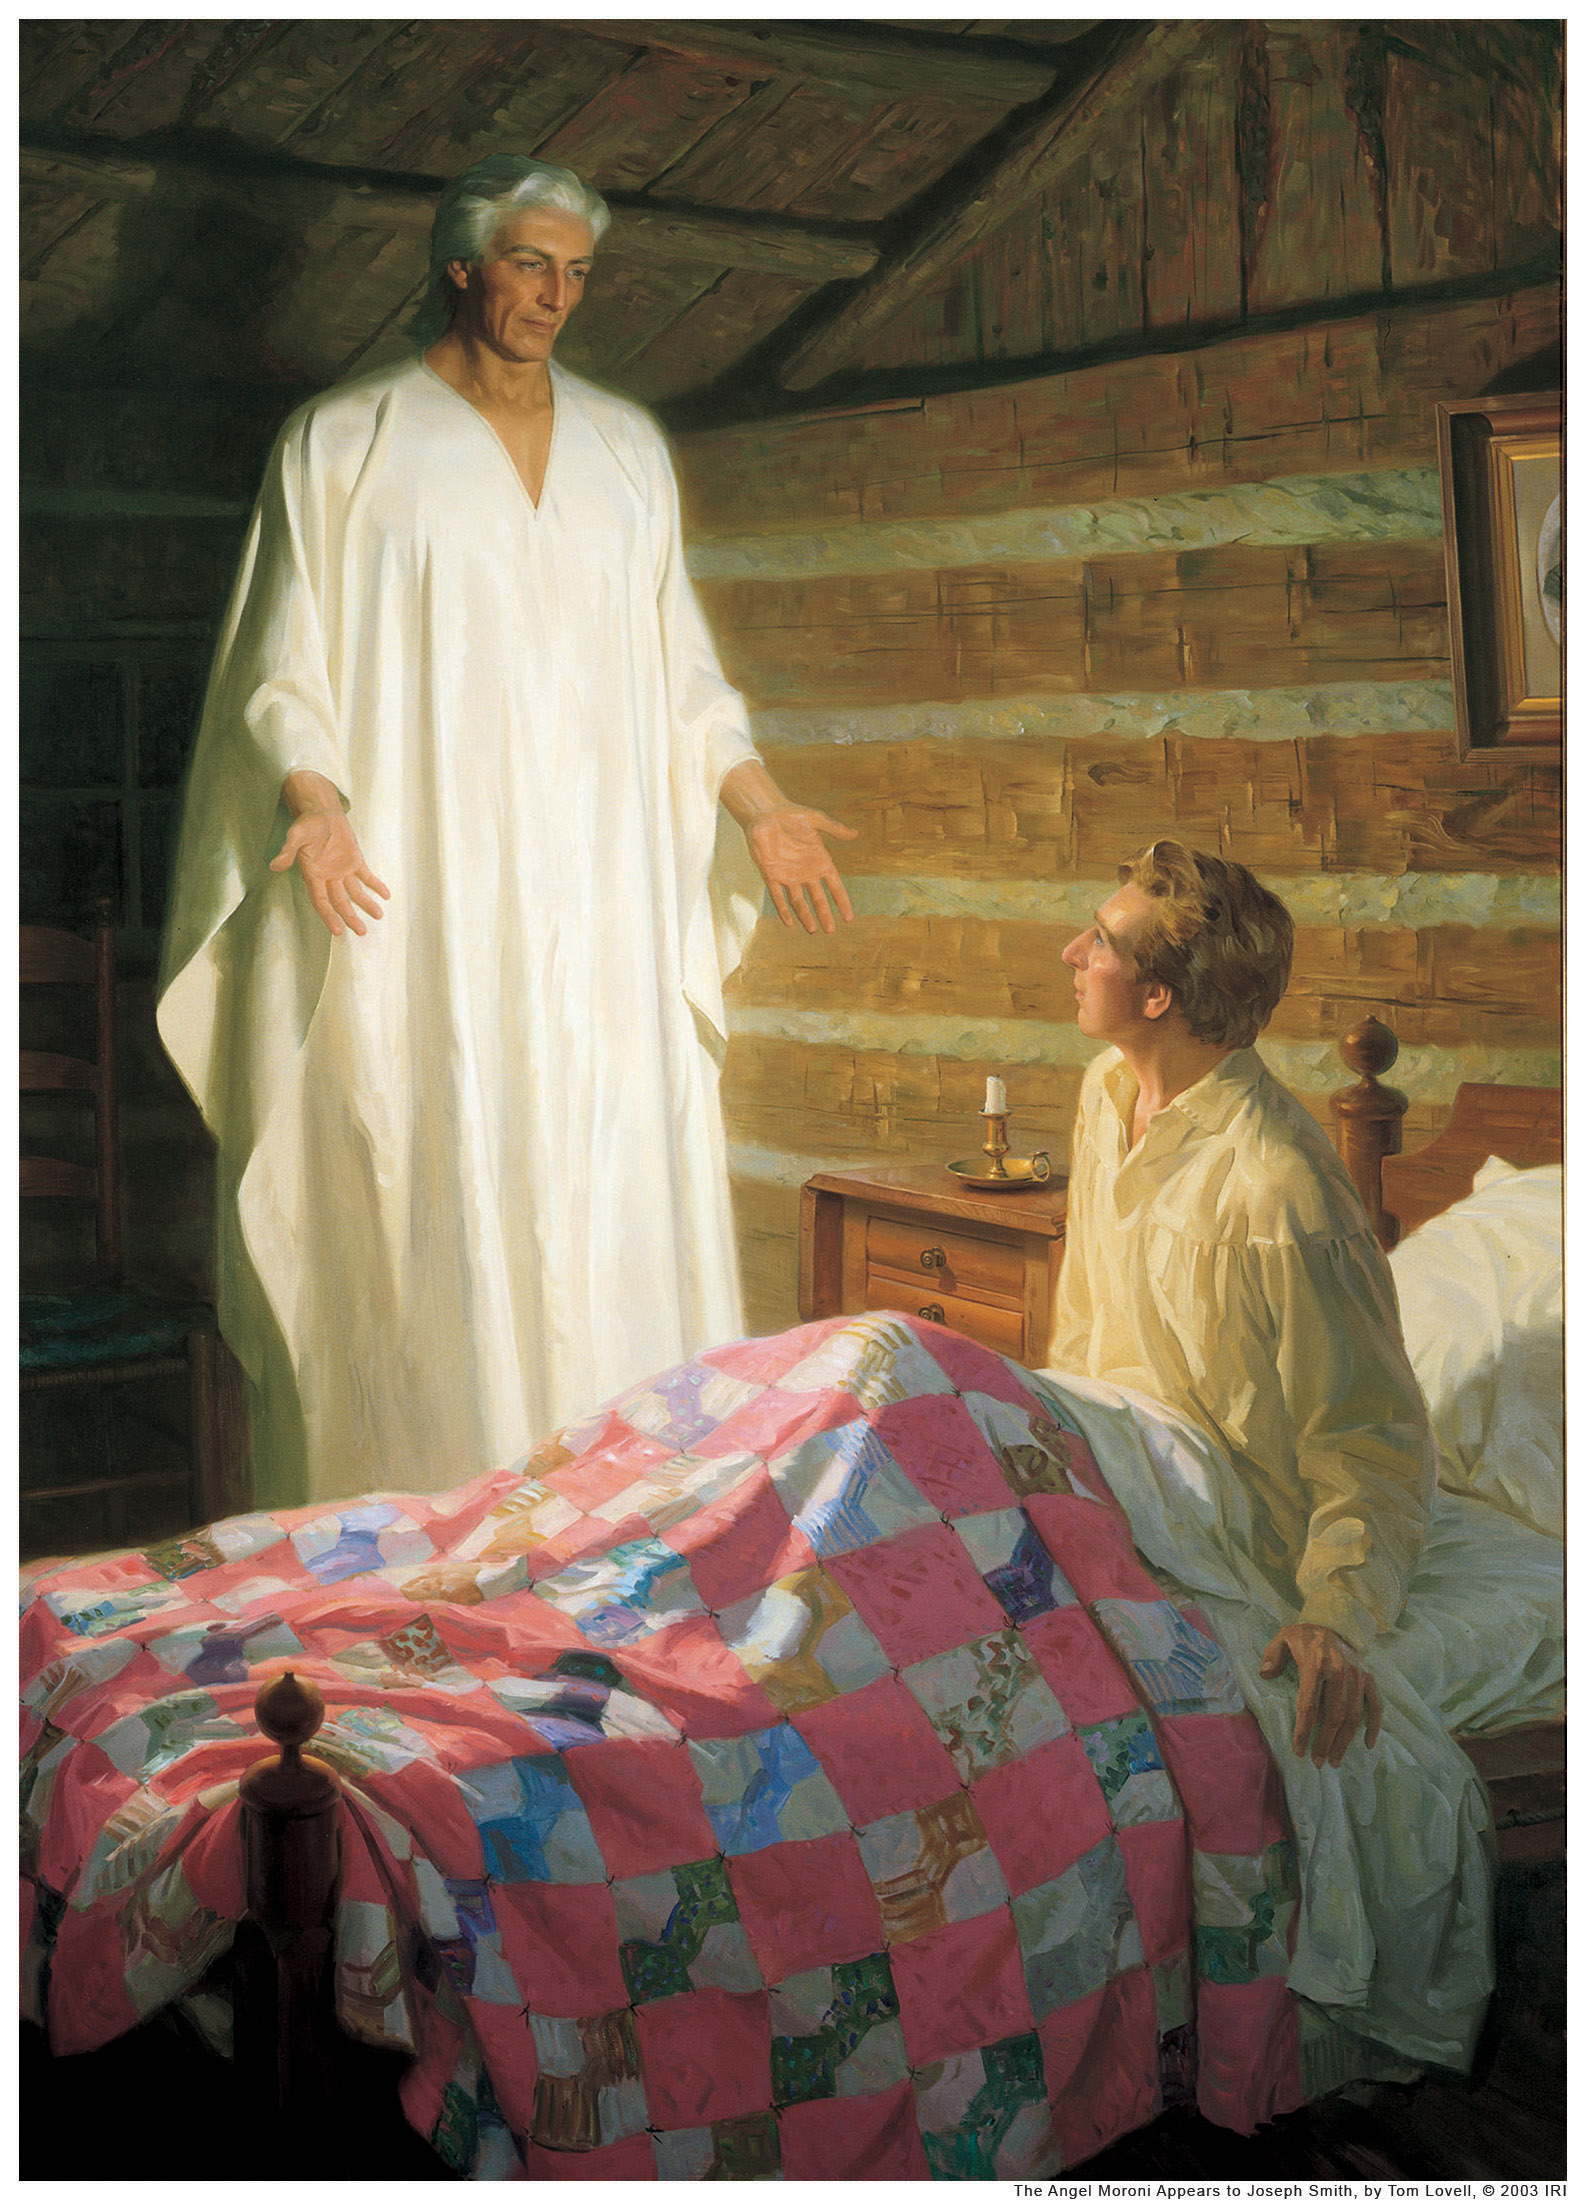 091-091-moroni-appears-to-joseph-smith-in-his-room-full.jpg